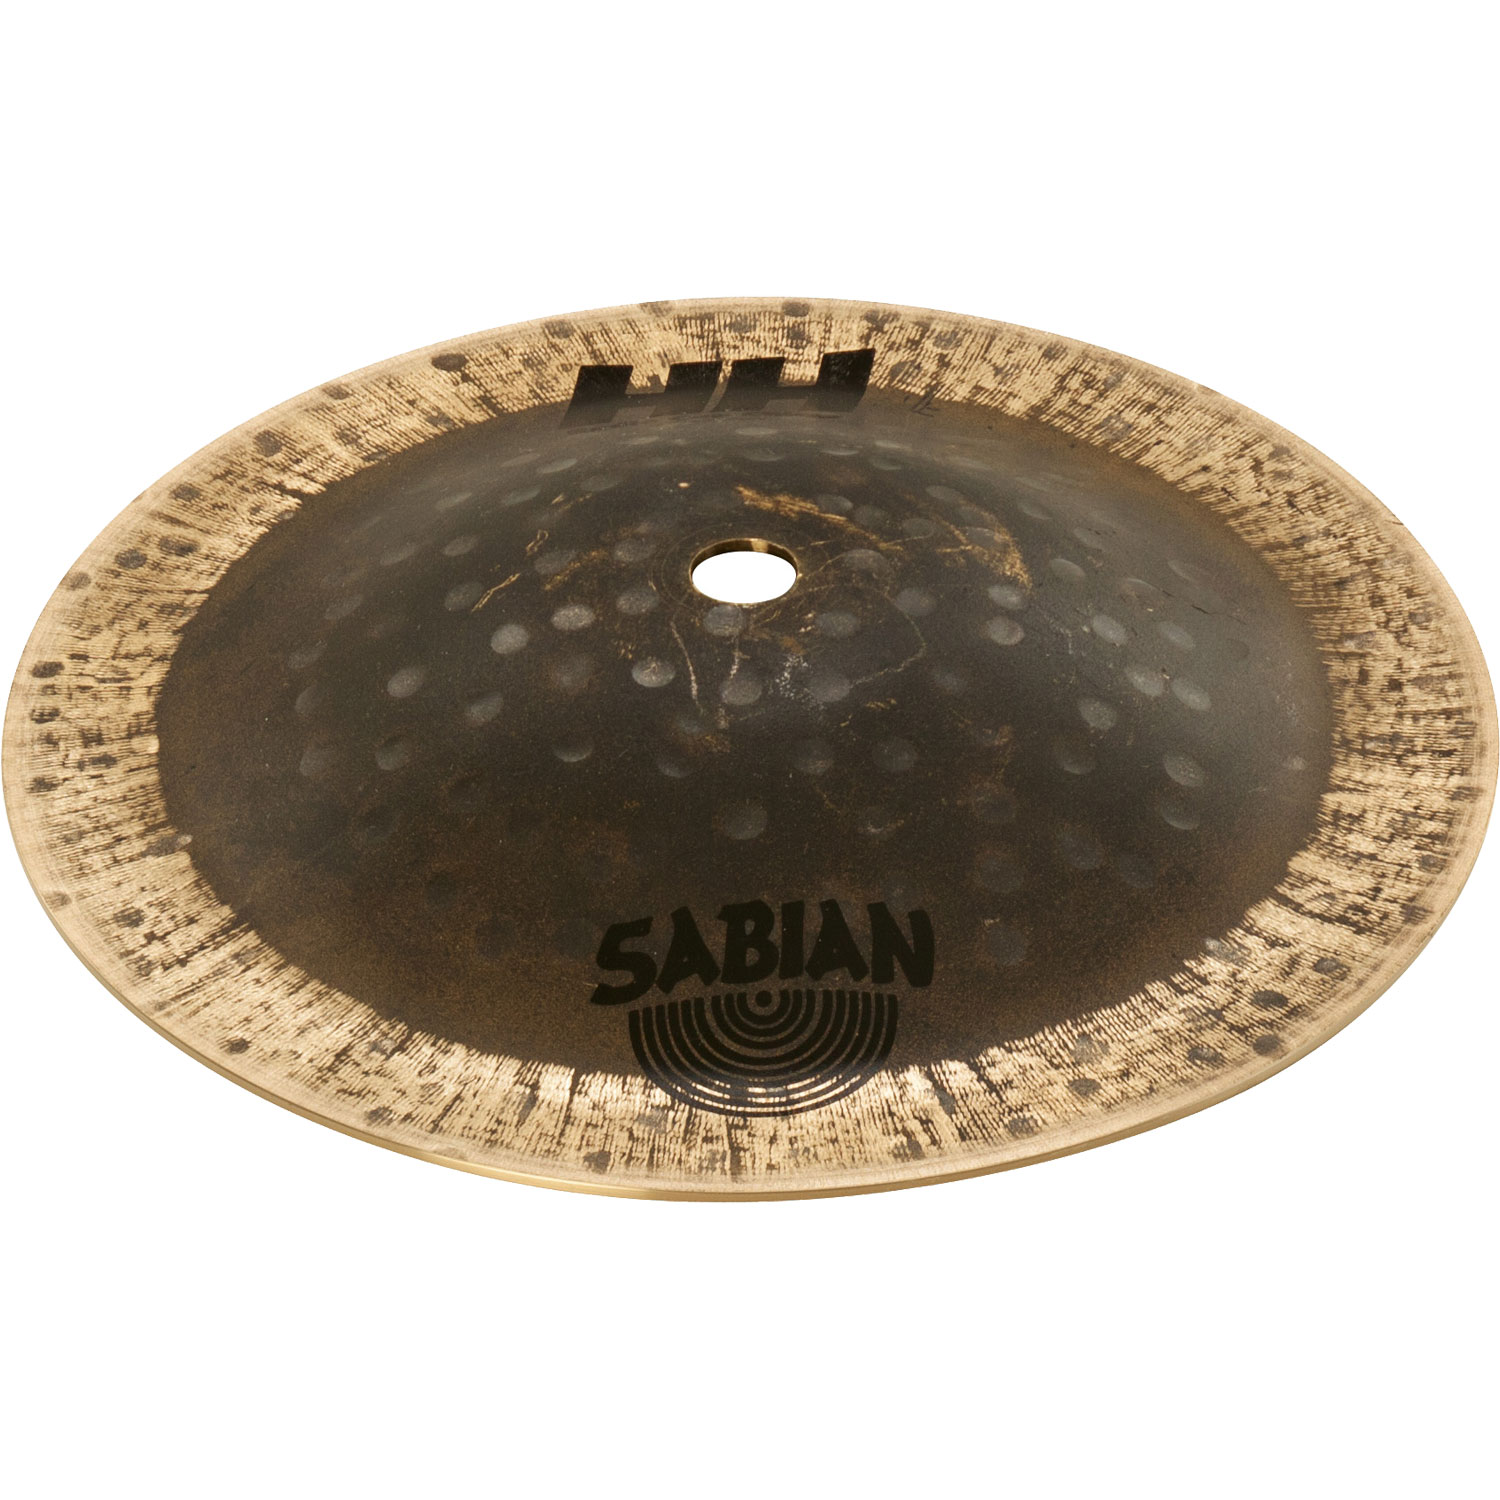 """Sabian 7"""" Radia Cup Chime with Natural Finish"""